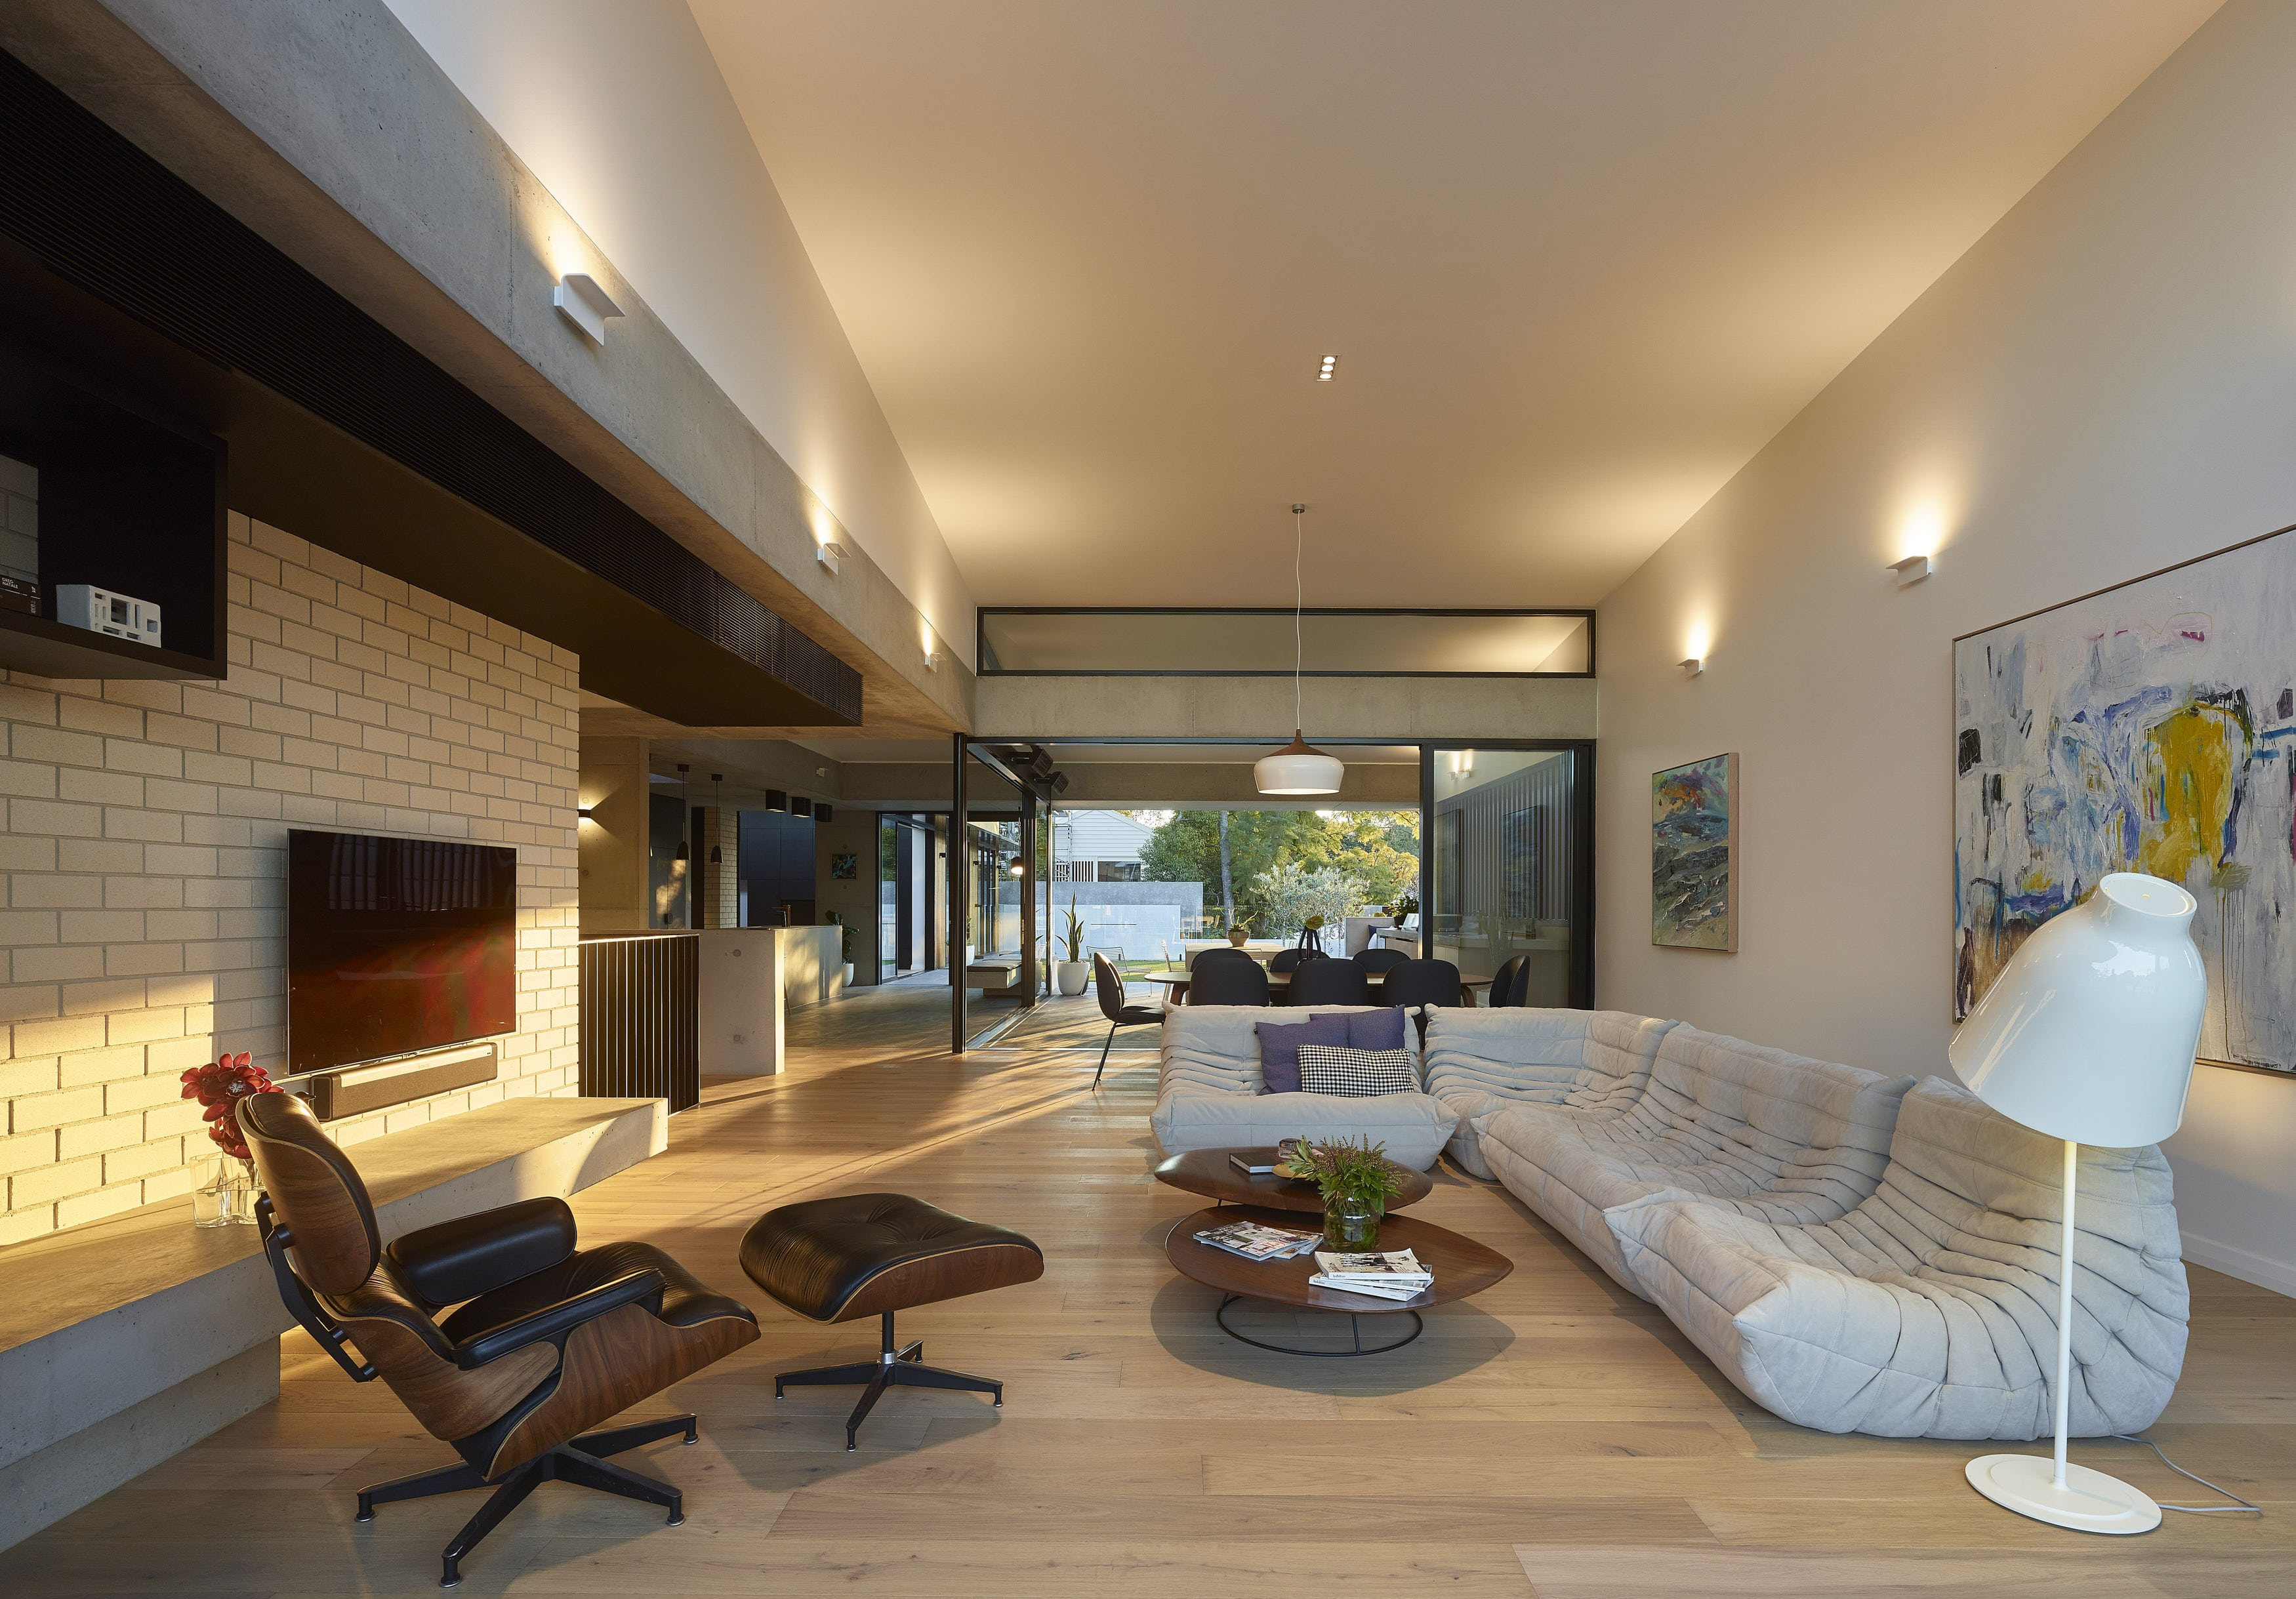 Gallery Of Sorrel Street By Shaun Lockyer Architects Local Australian Design And Interiors Paddington, Qld Image 20 Min